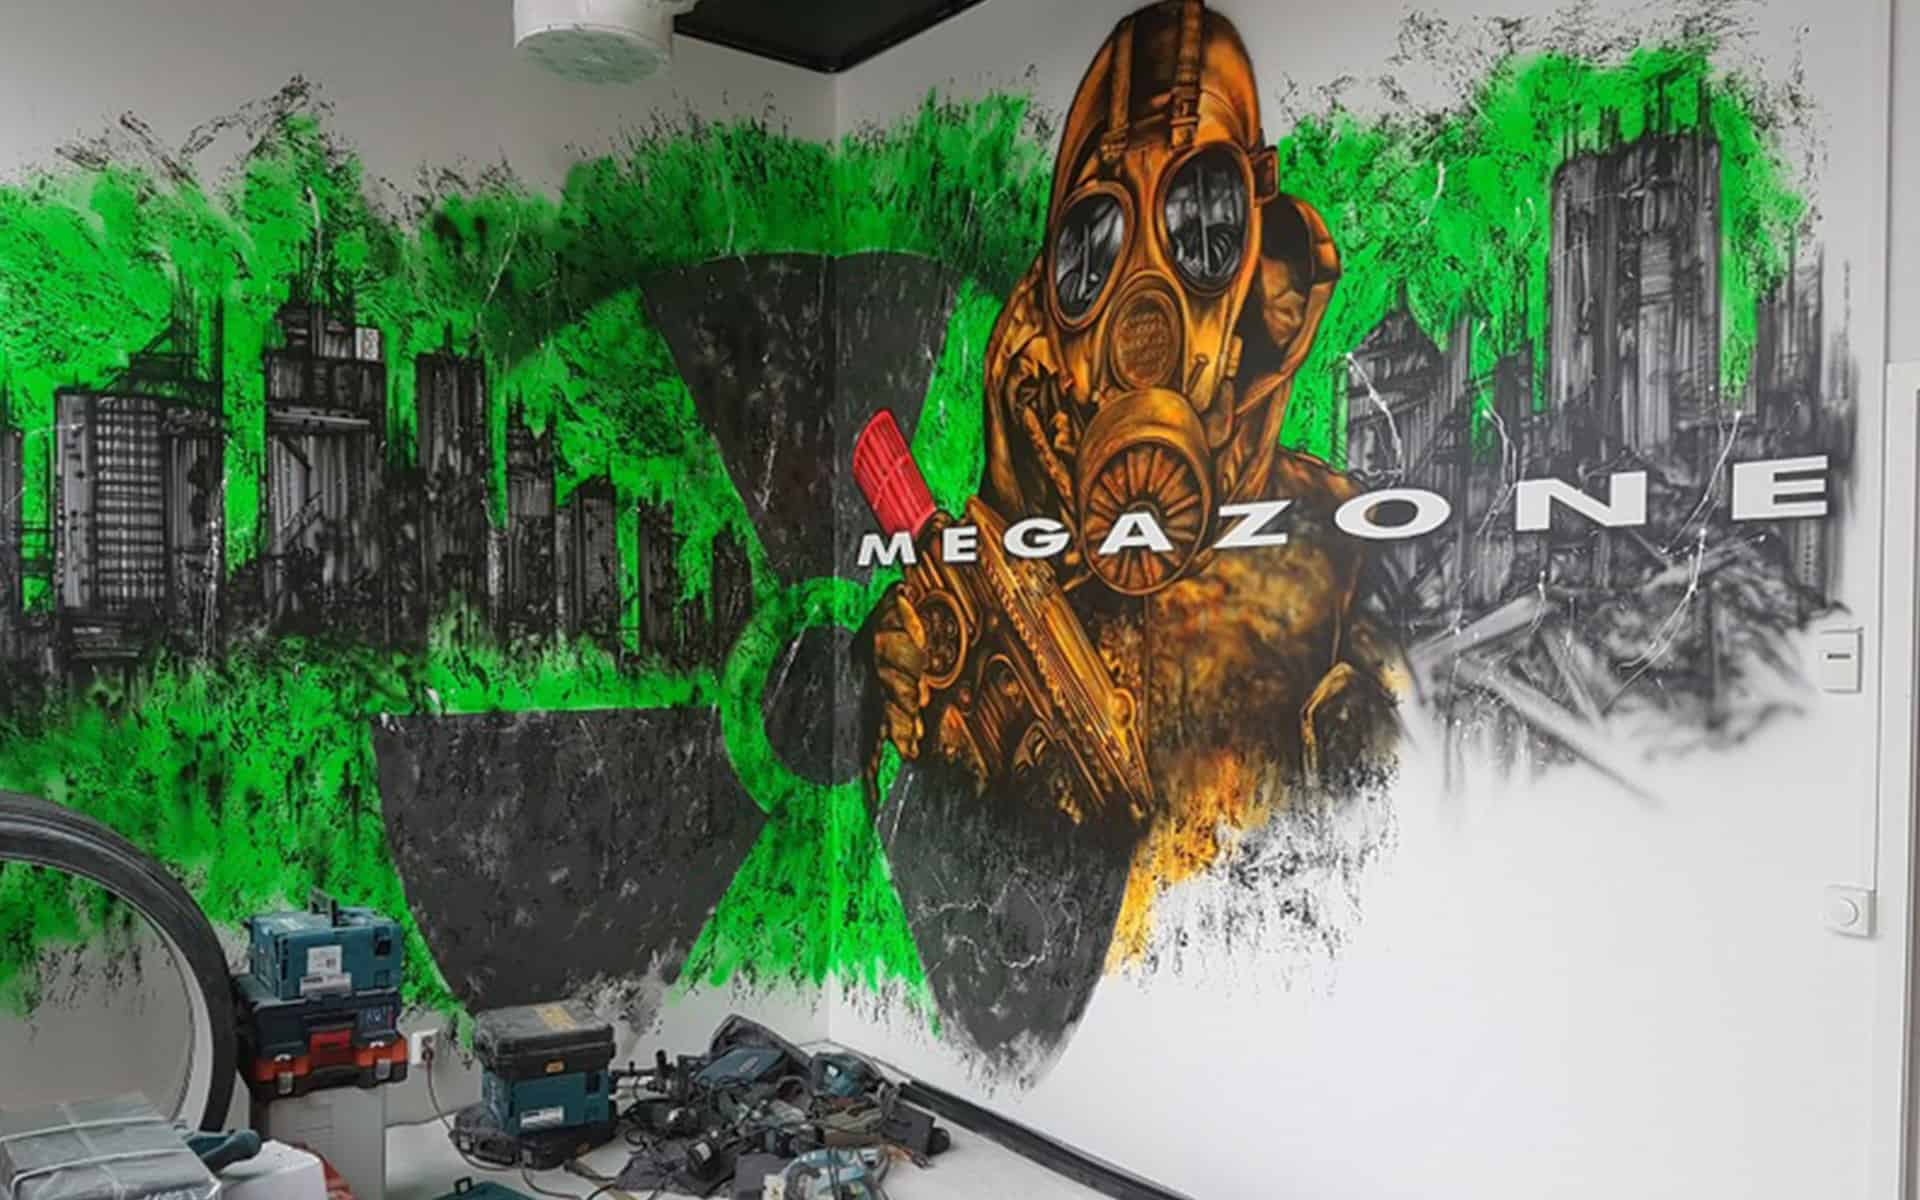 laser-tag-gary-drew-mural-painting